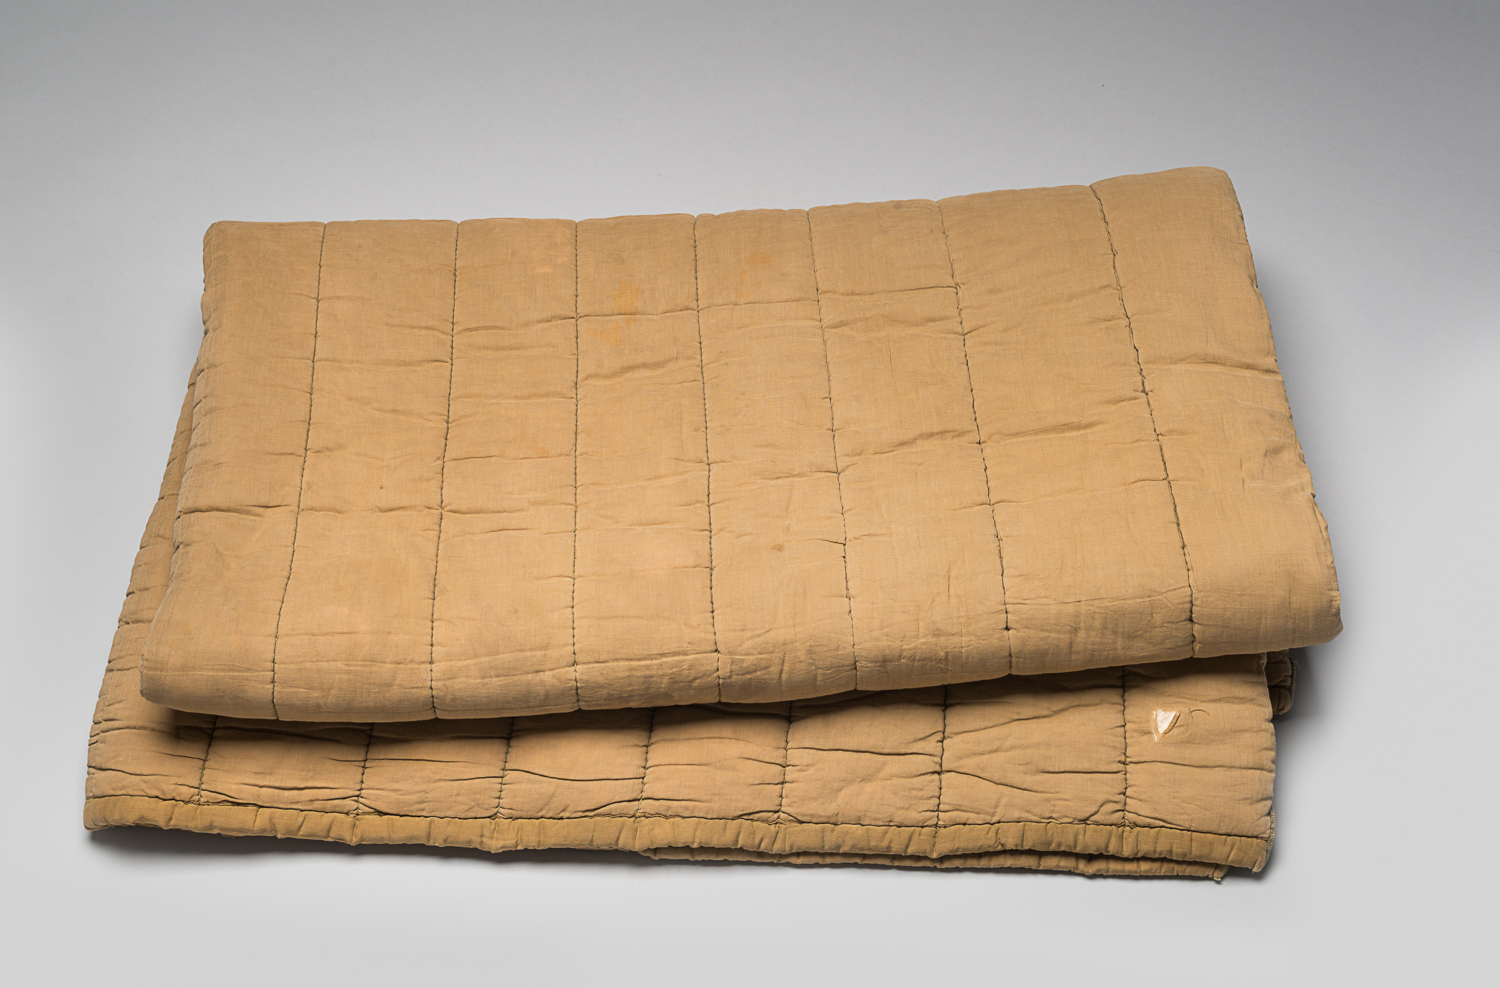 Max Appelboom was deported to the Bergen-Belsen camp in Germany and later transferred to Auschwitz, Poland. He managed to keep this blanket with him during his deportations, as well as during a death march.